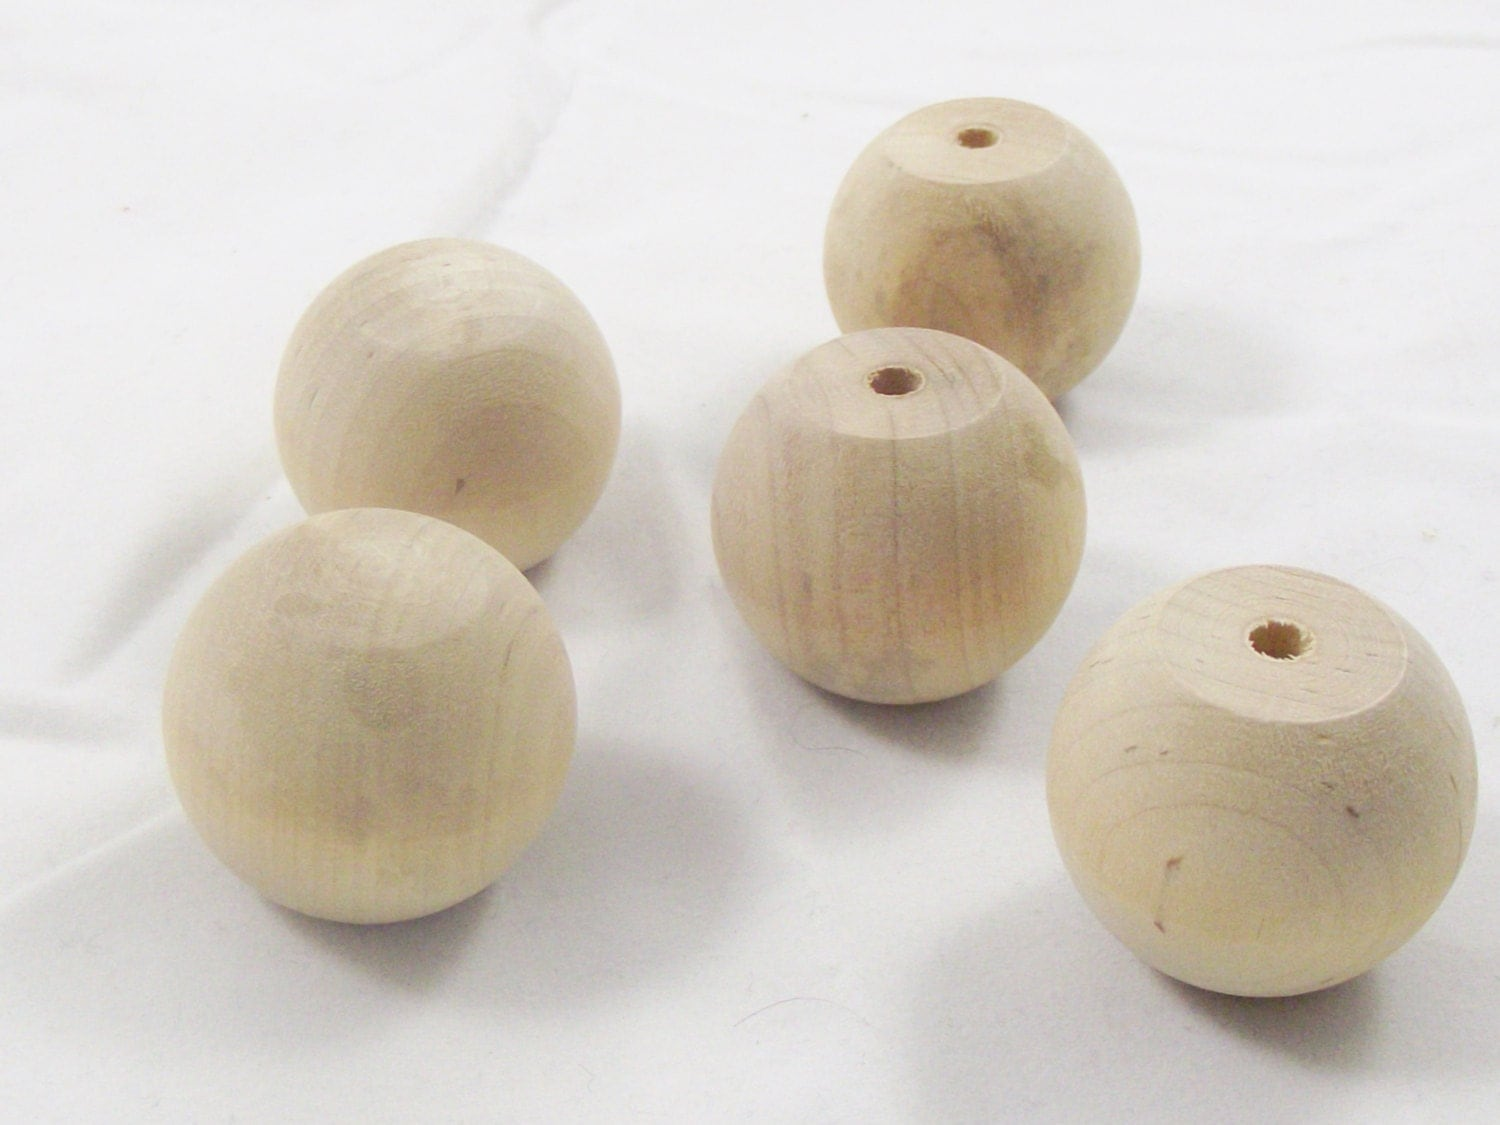 Wooden finial 5 piece set ornament wood craft supplies for Wooden finials for crafts